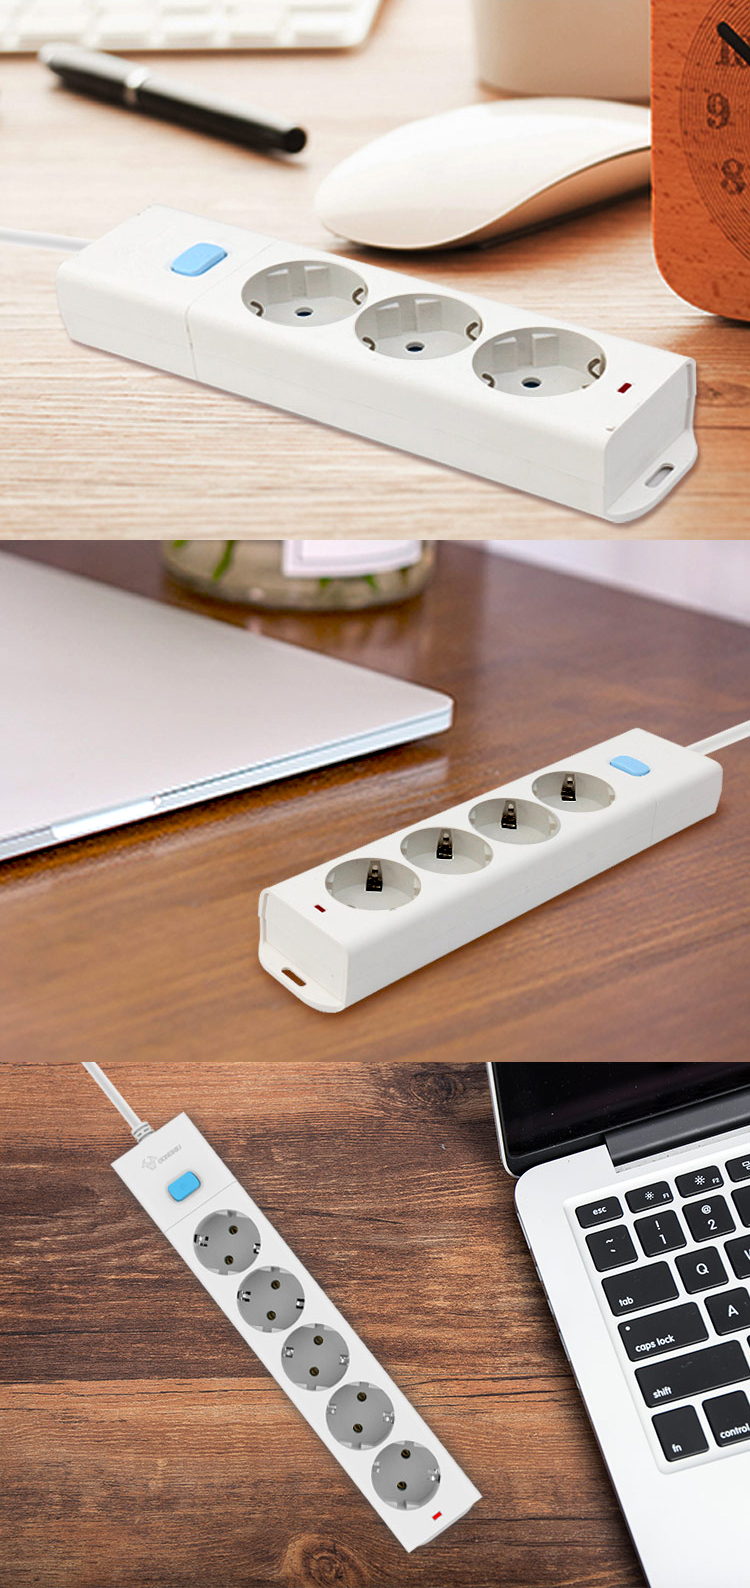 Bull 16A 3680W 3/4/5 Way AC Universal Outlets Plug Home Socket EU Plug Power Strip Overload Protection Extension Cord